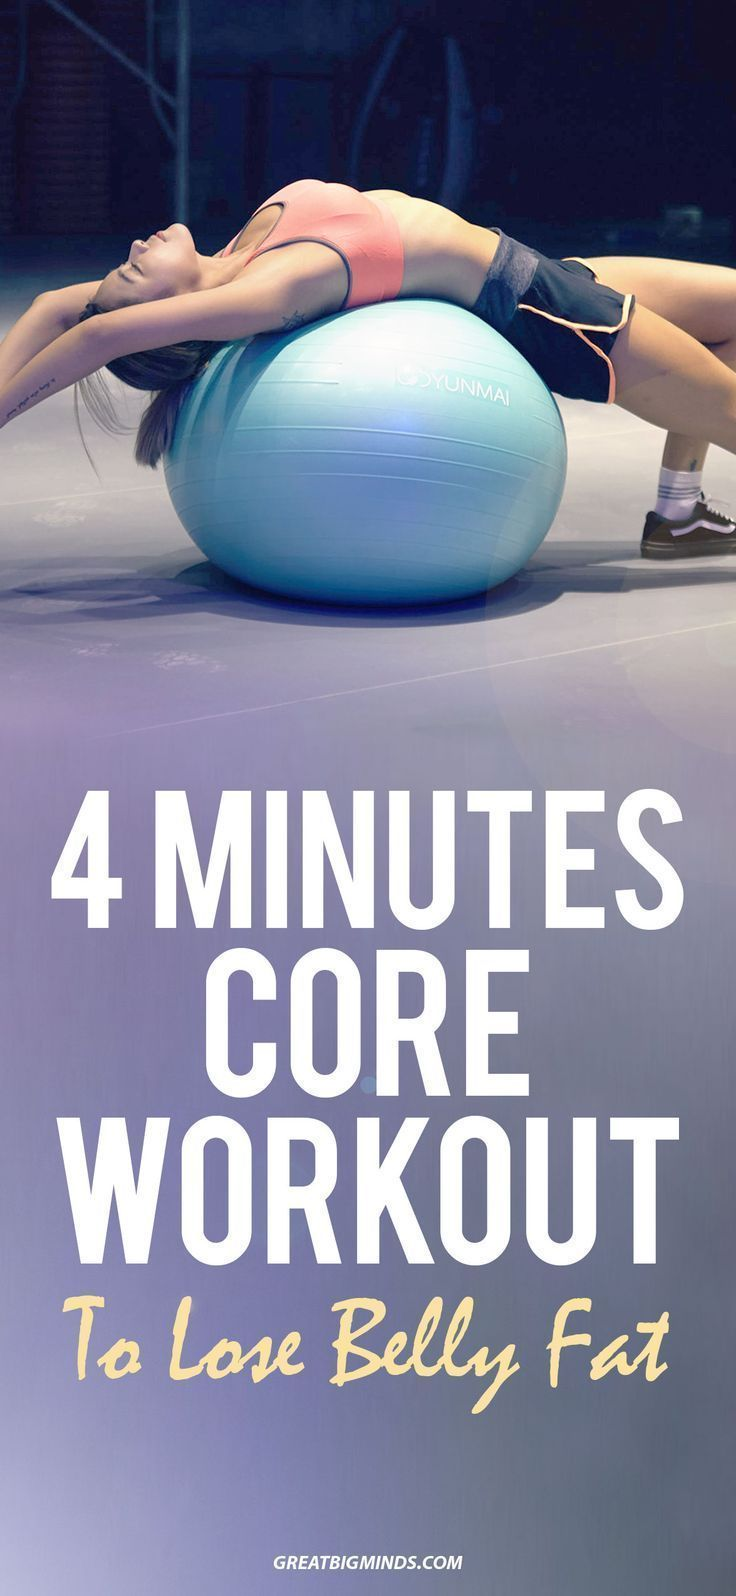 4 Minutes Core Workout To Lose Belly Fat. Looking for effective ways on how to g...